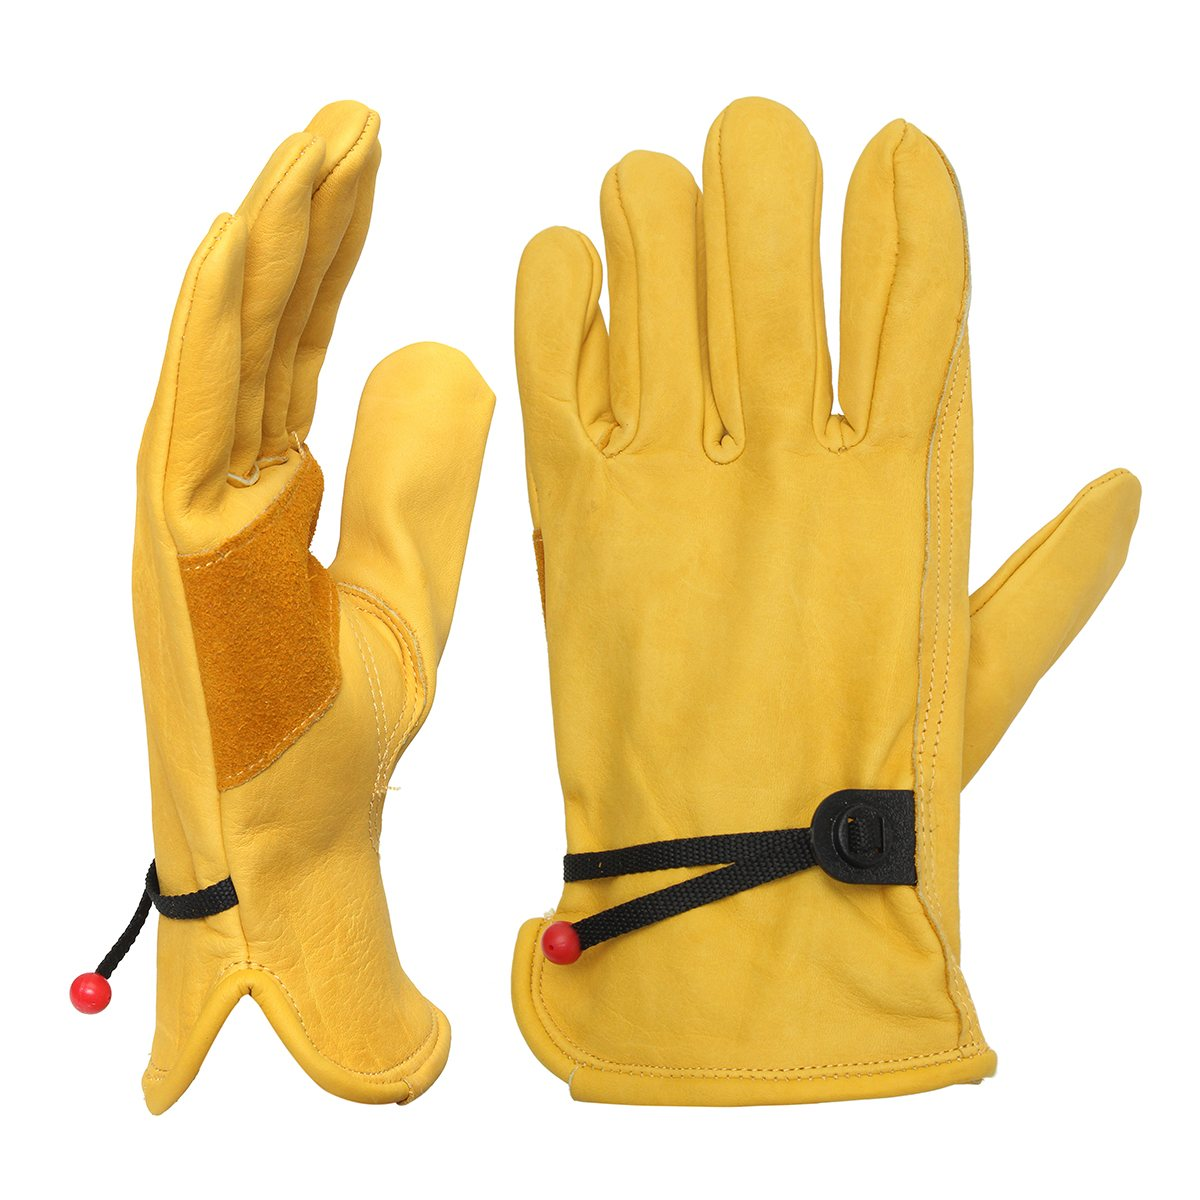 NEW Safurance one Pair Yellow Driver Security Protection Wear Safety Workers Welding Moto Gloves Workplace Safety new safurance pro tree carving fall protection rock climbing equip gear rappelling harness workplace safety